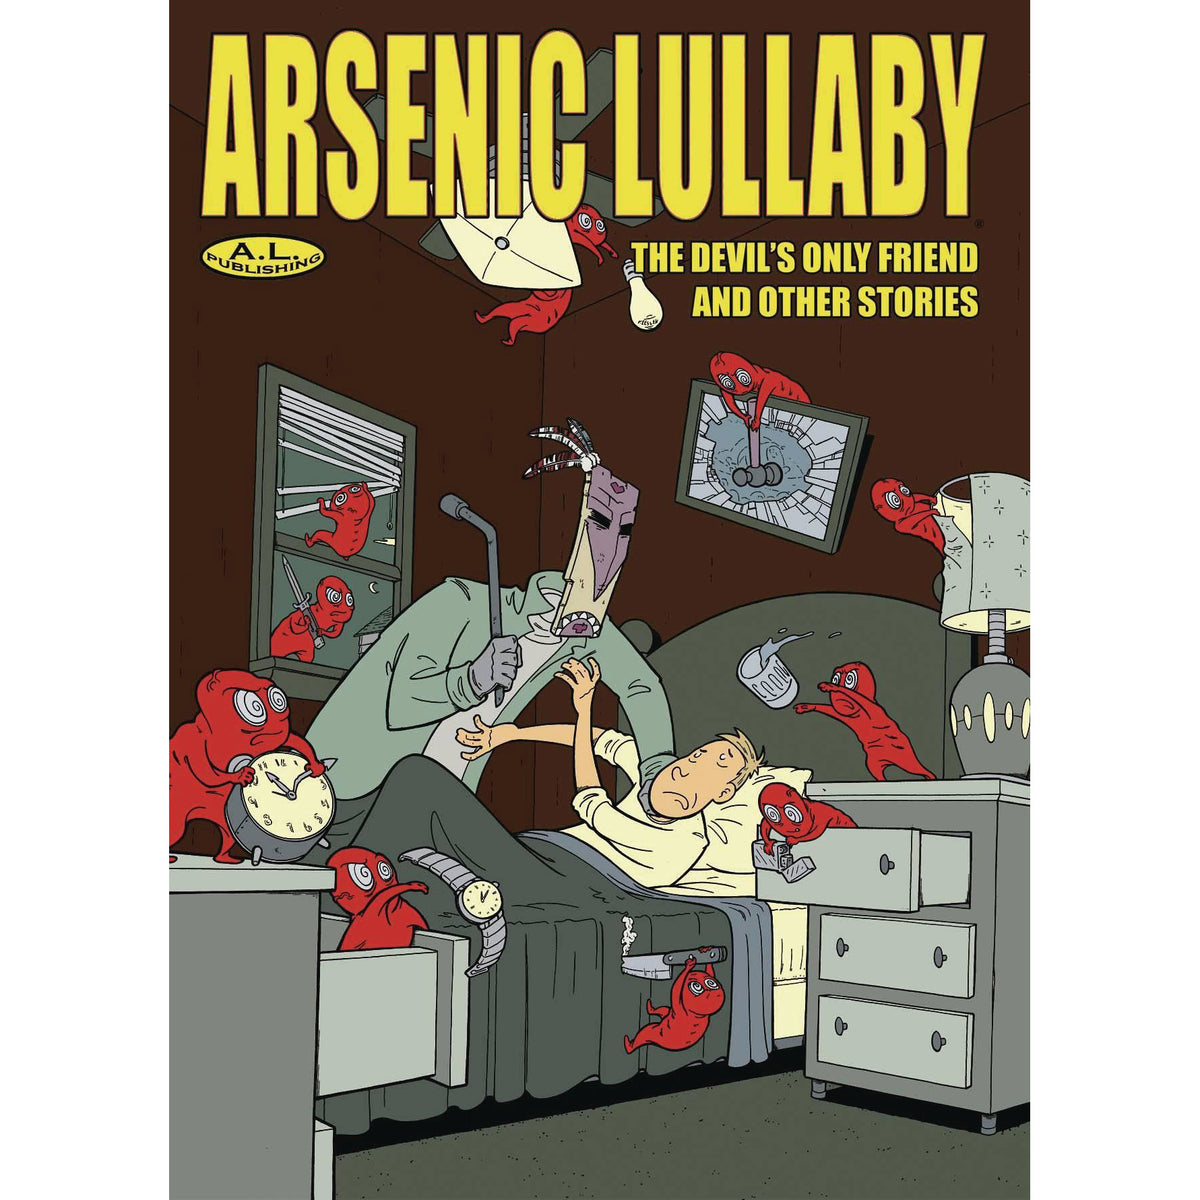 ARSENIC LULLABY: THE DEVILS ONLY FRIEND AND OTHER STORIES